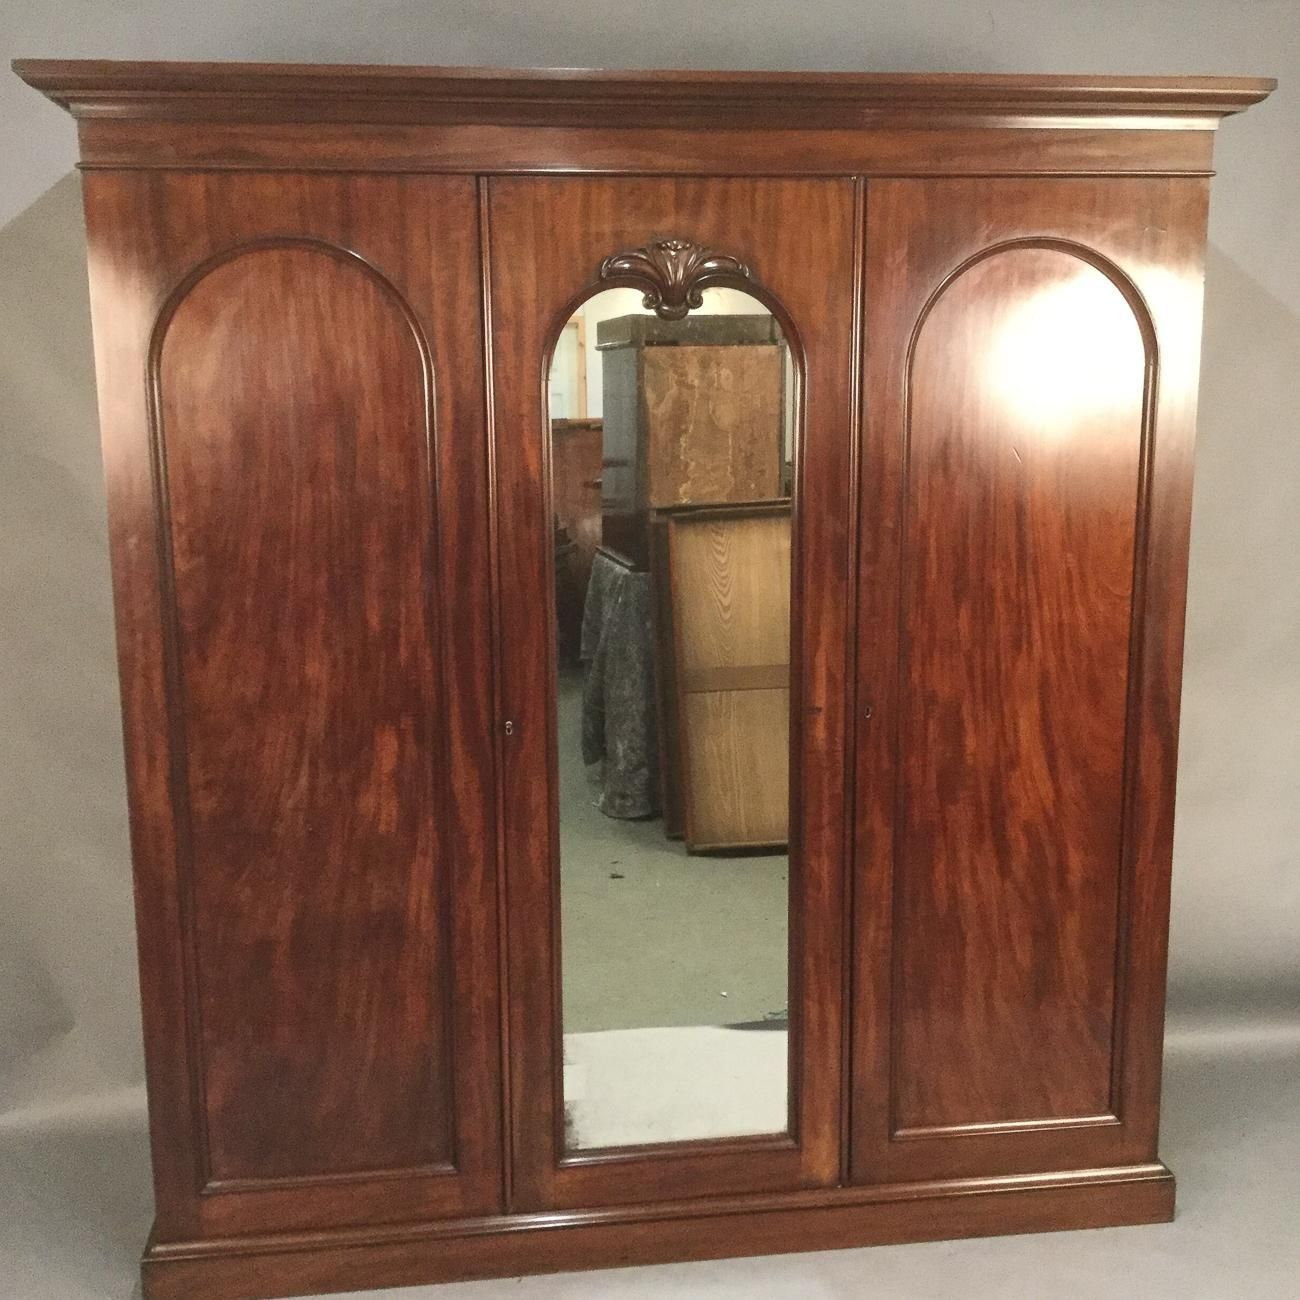 lane walnut beveled ruby single roberts mirror item antique door antiques wardrobe wardrobes eastlake victorian